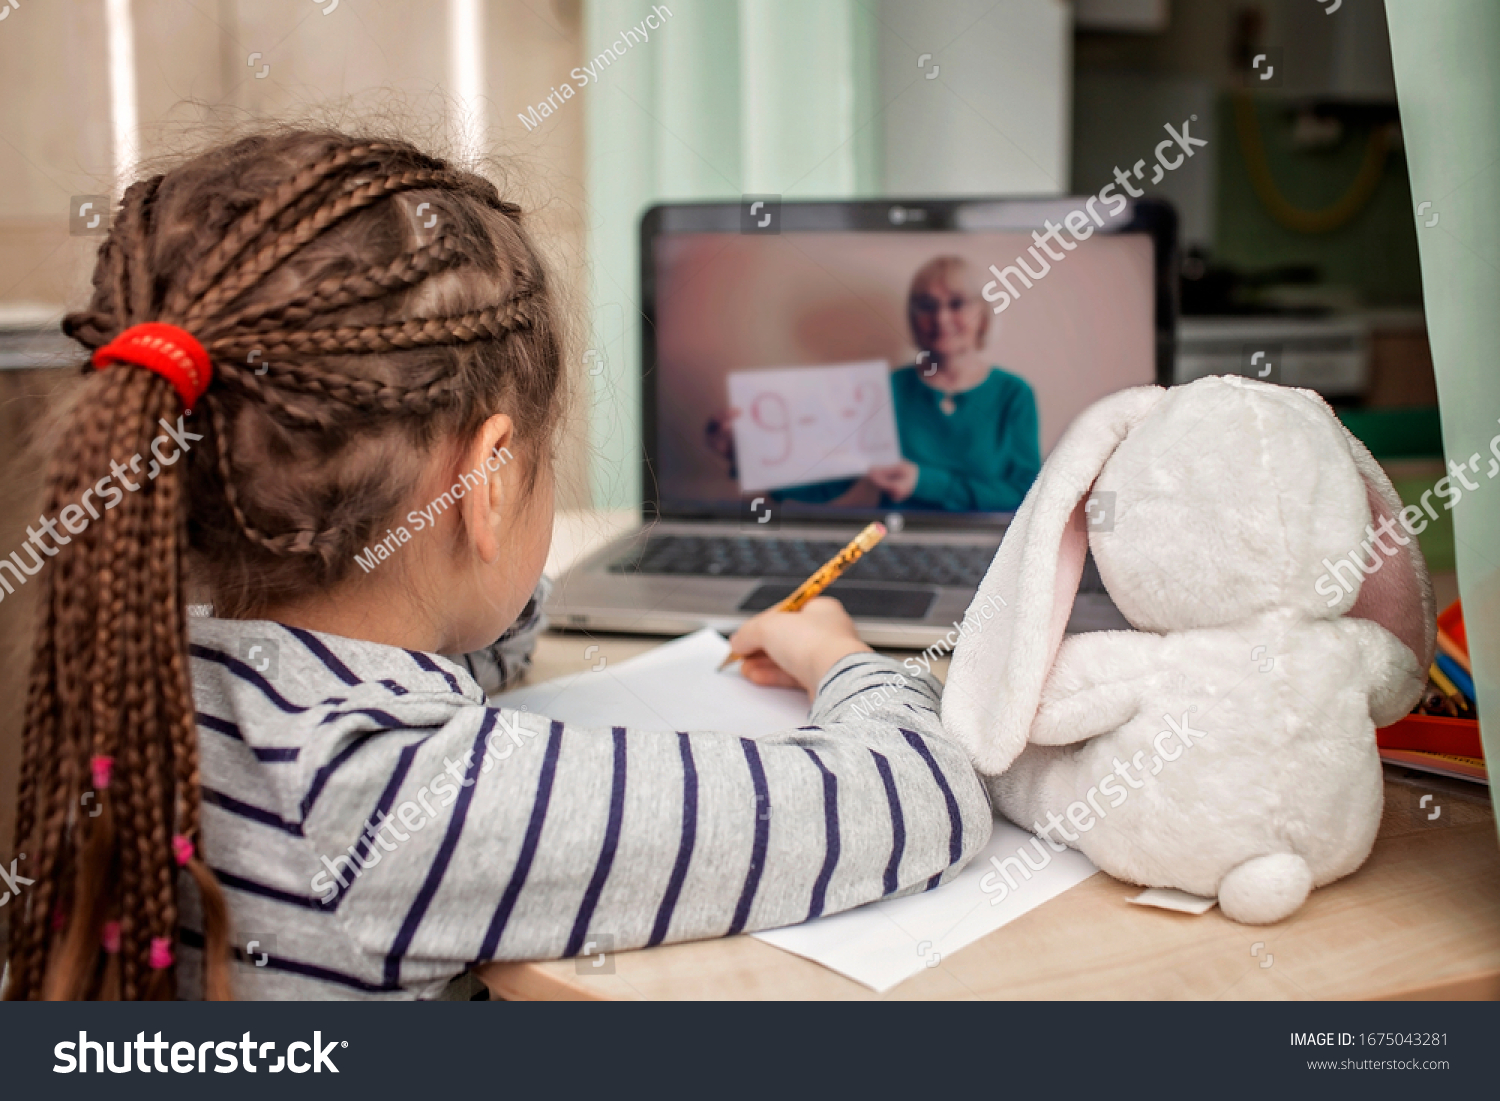 Pretty stylish schoolgirl studying math during her online lesson at home, social distance during quarantine, self-isolation, online education concept #1675043281